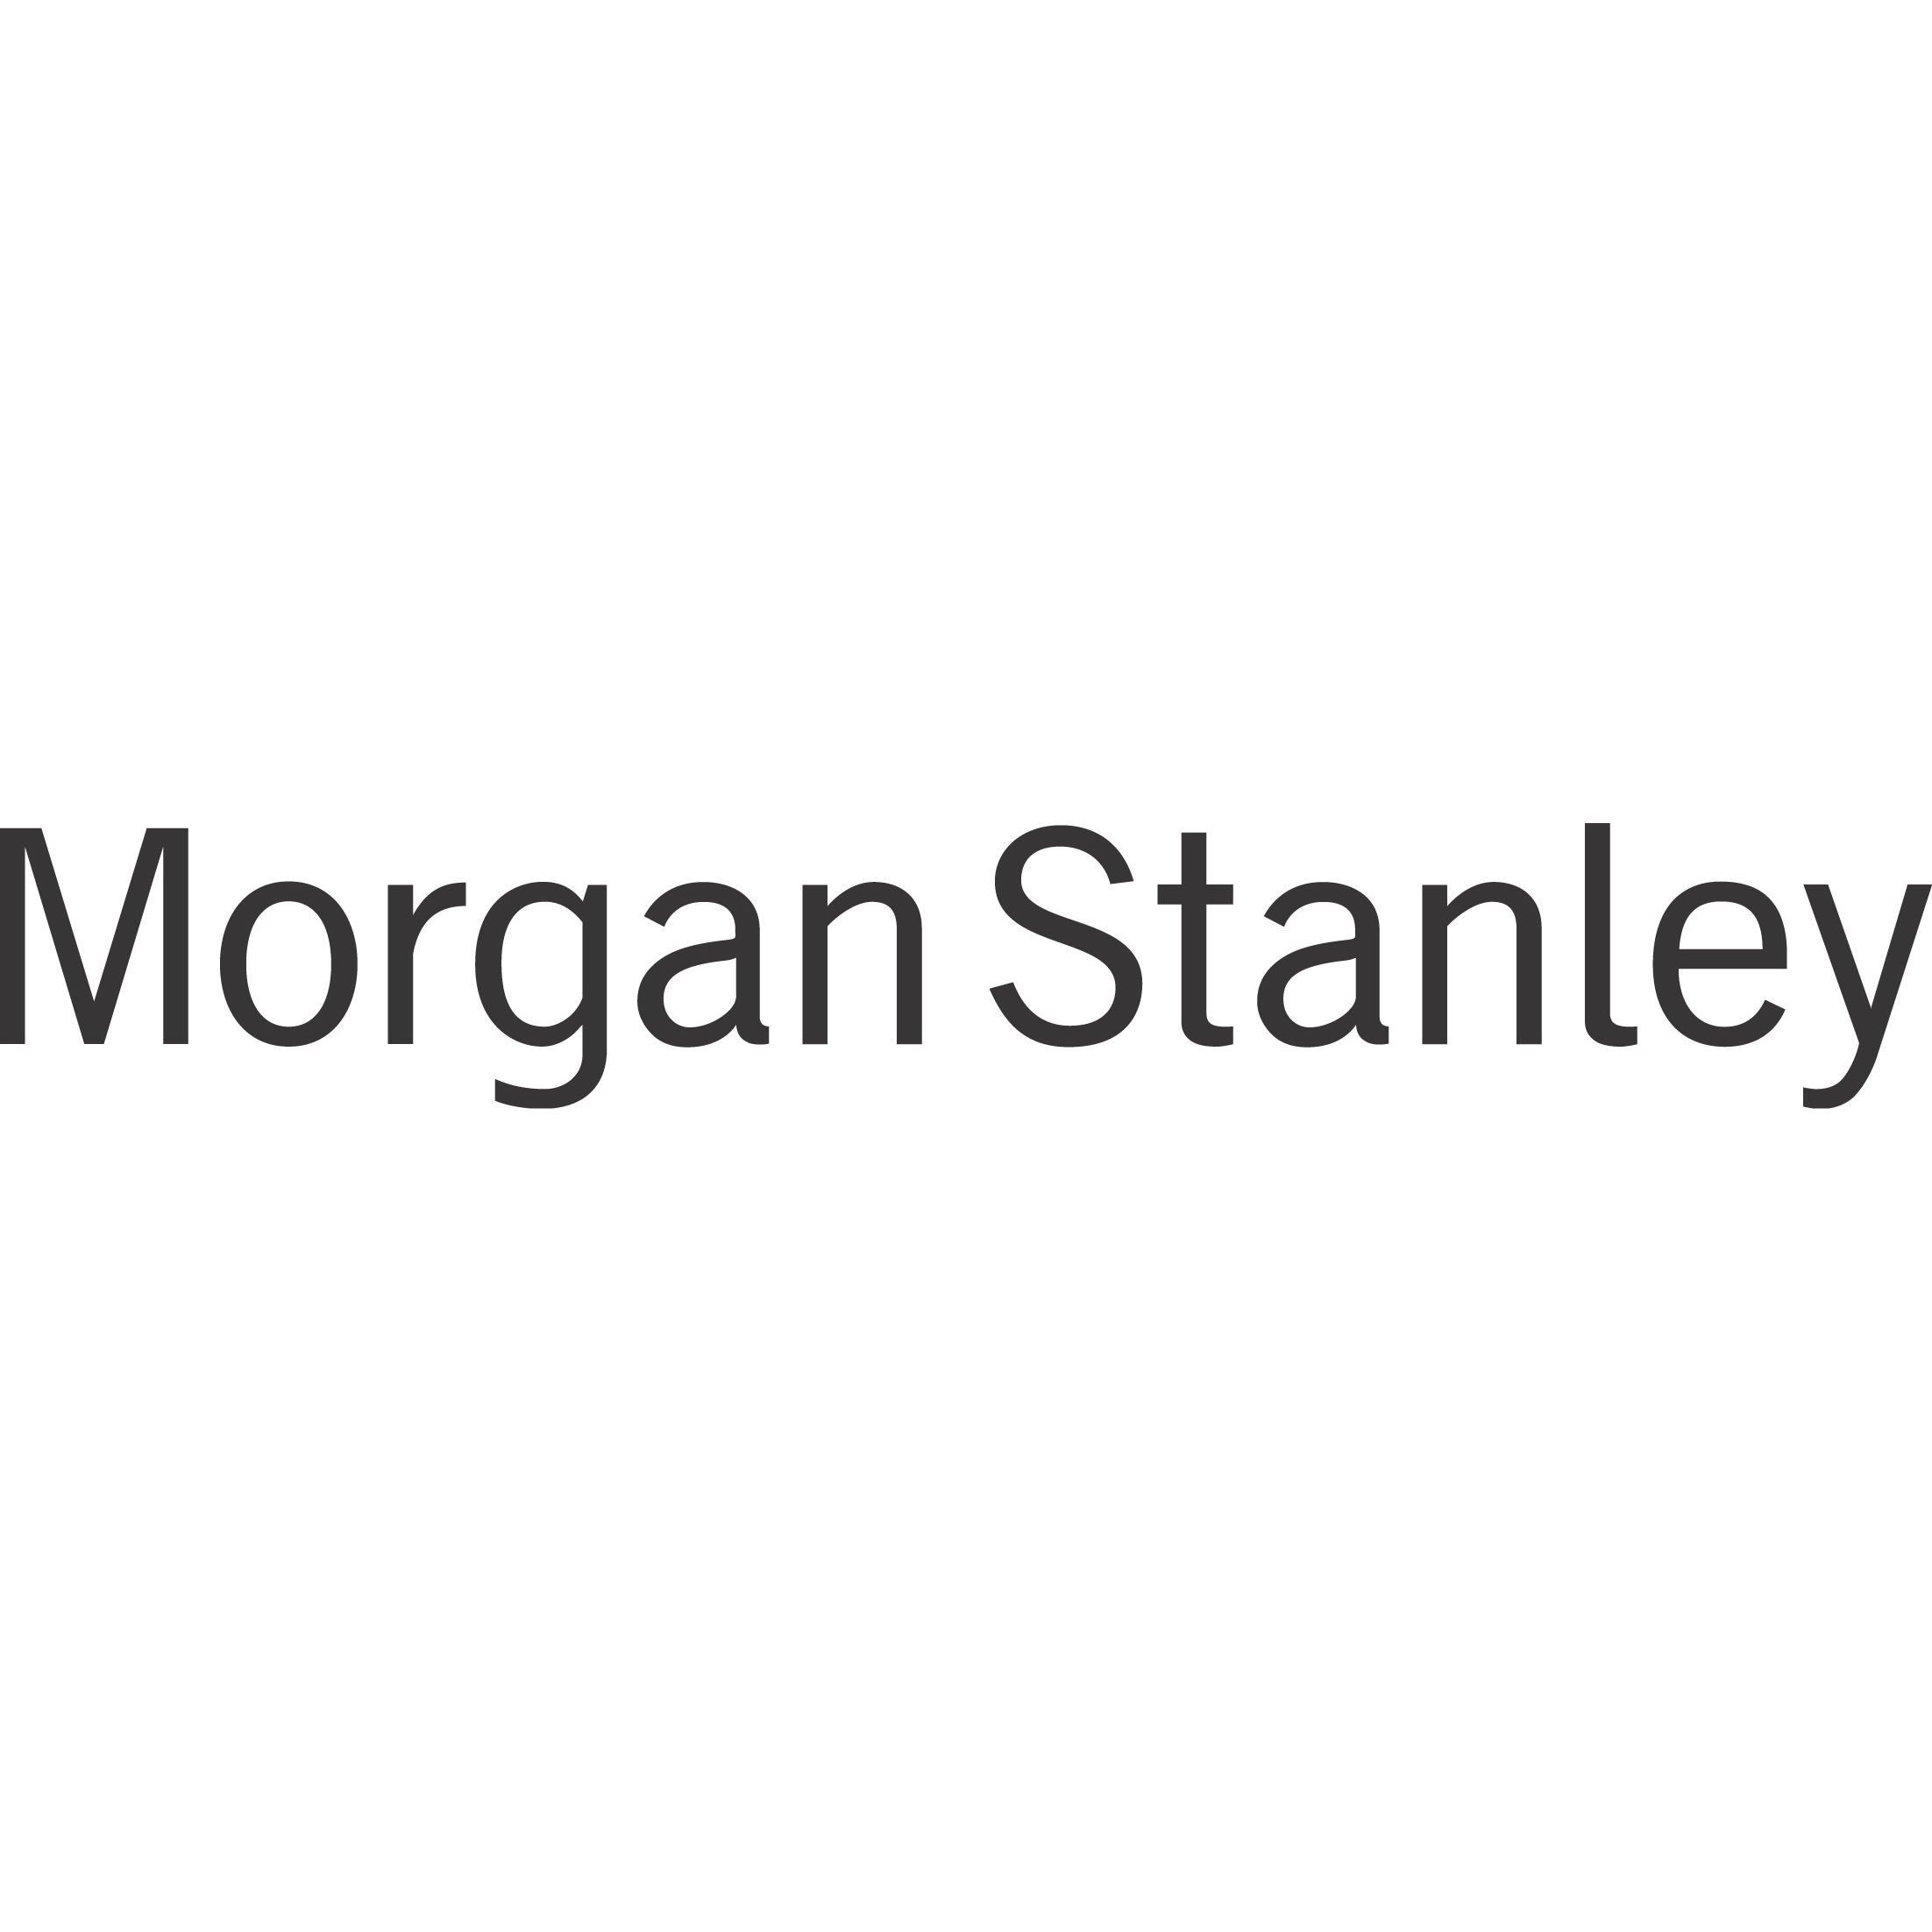 Gregg W Gravenstine - Morgan Stanley | Financial Advisor in Mount Laurel,New Jersey